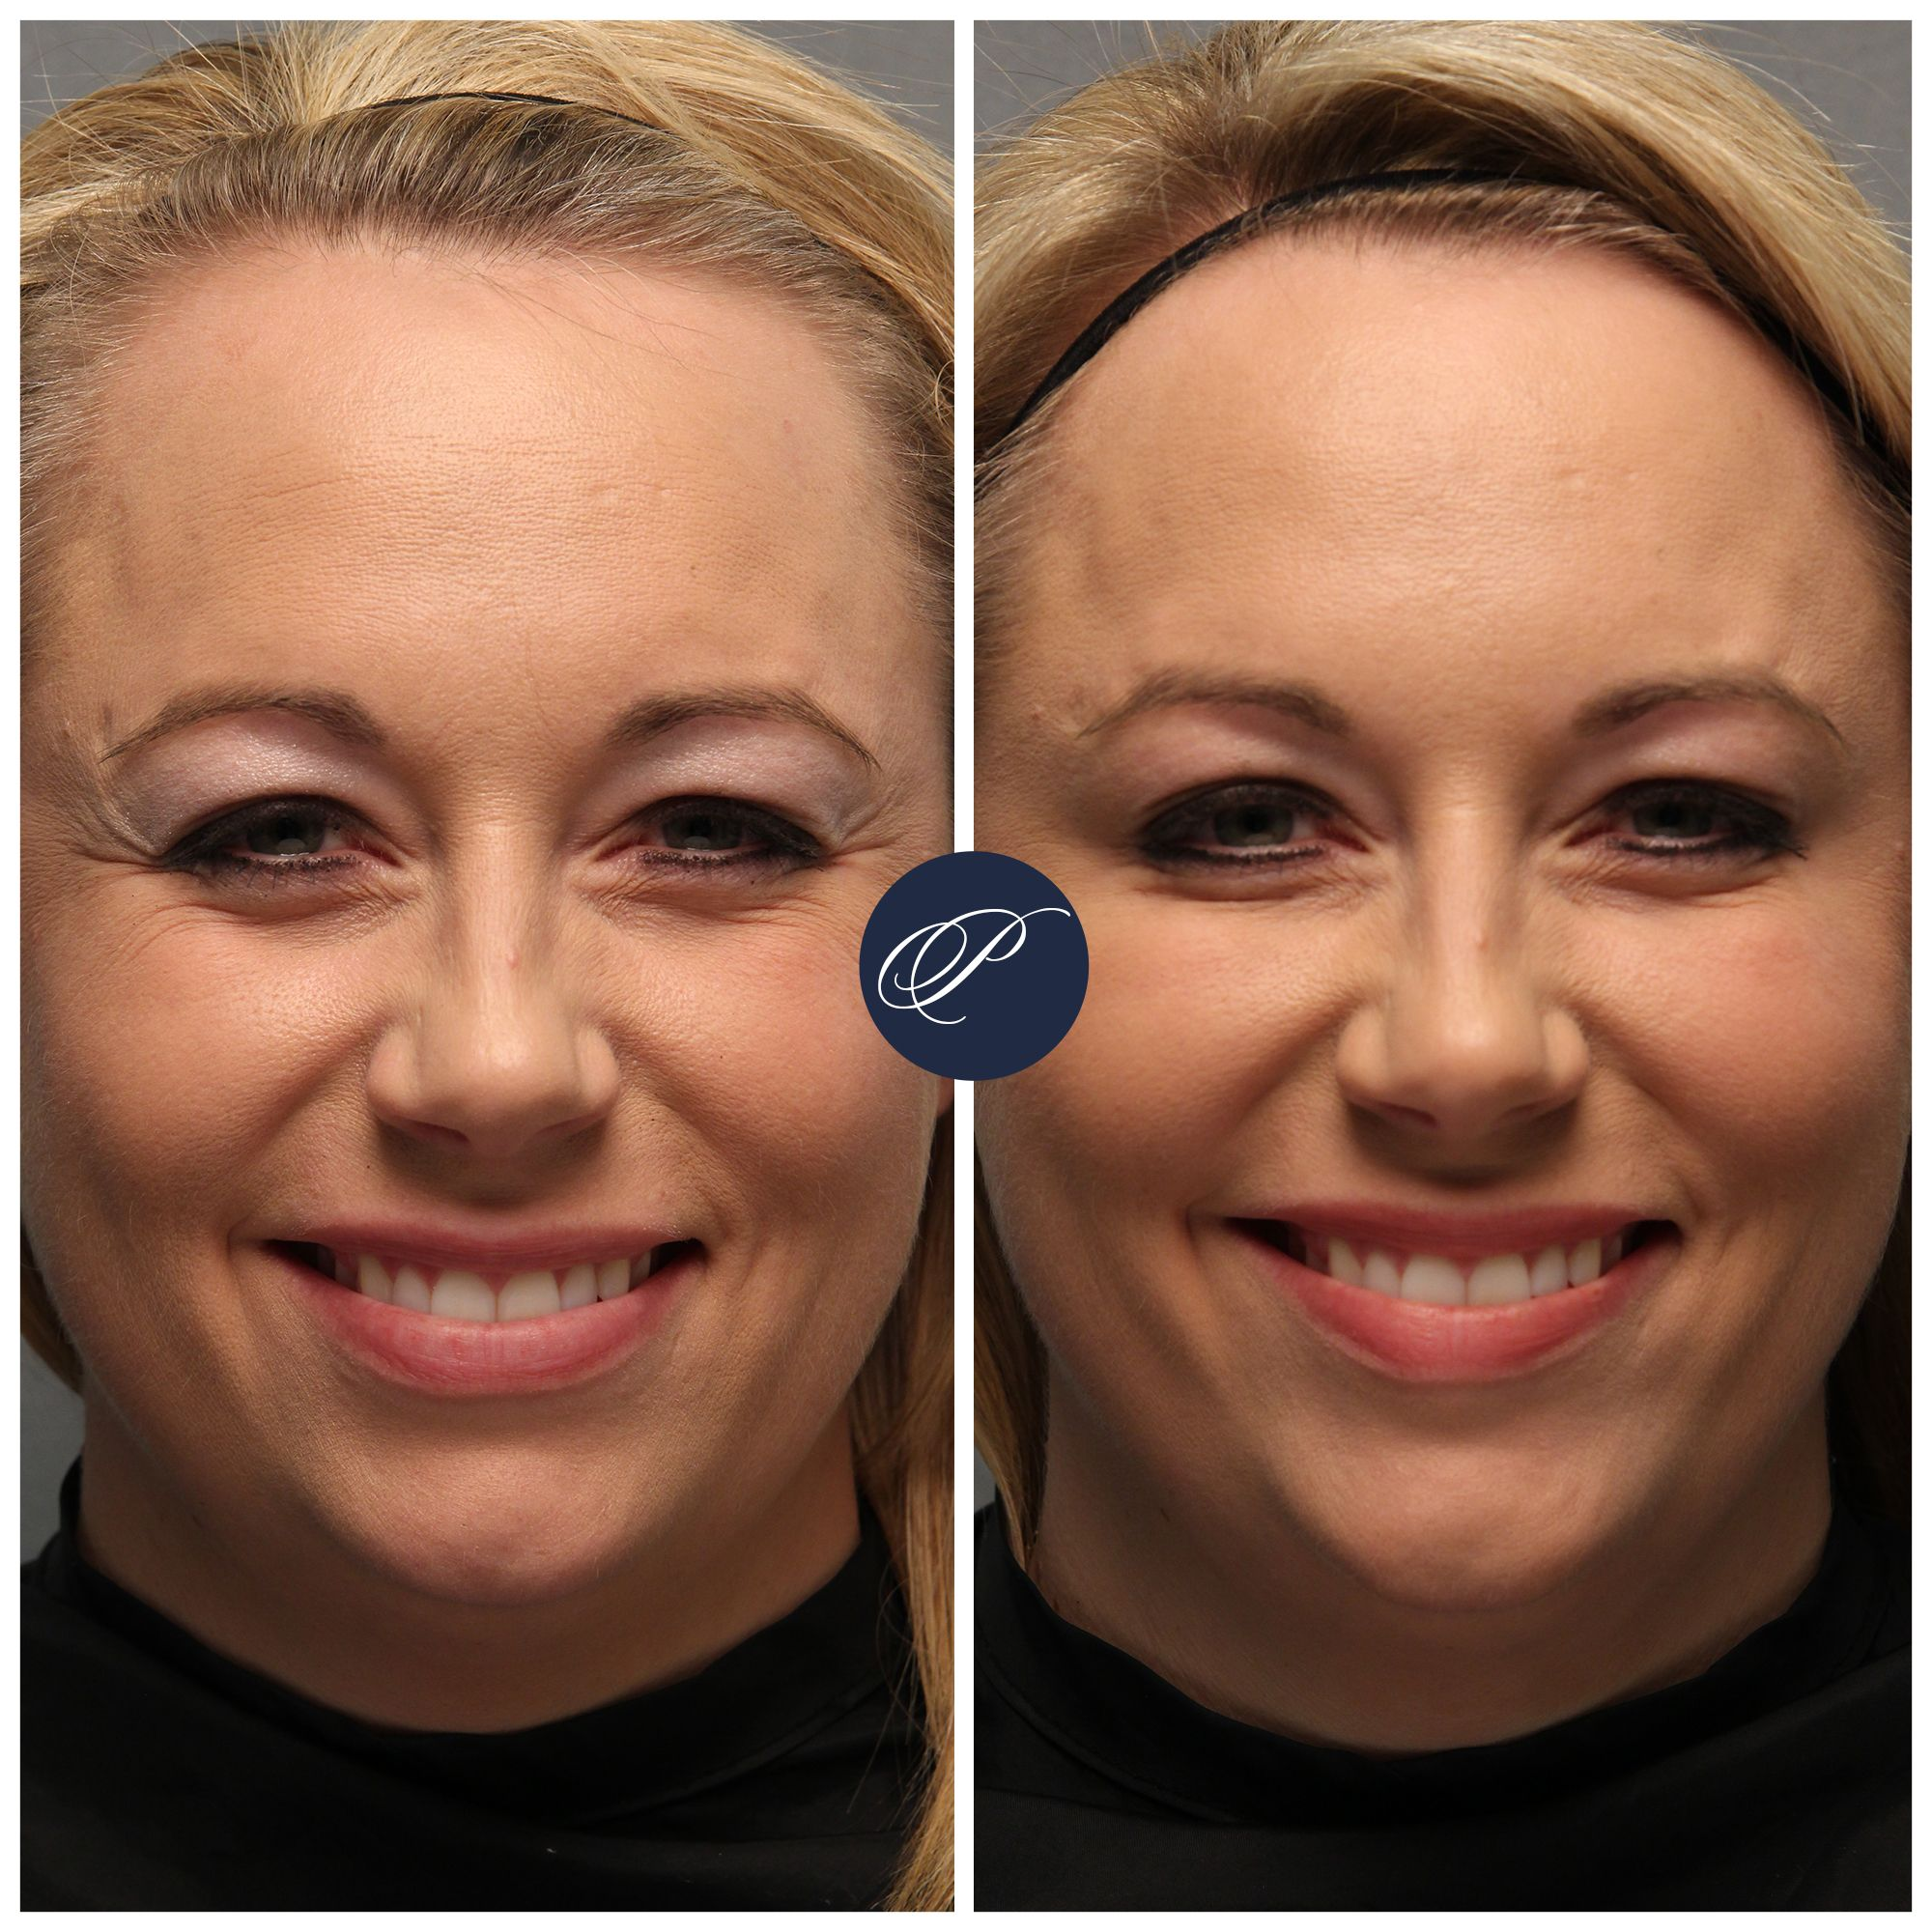 Injectable treatments are a beautiful thing for restoring